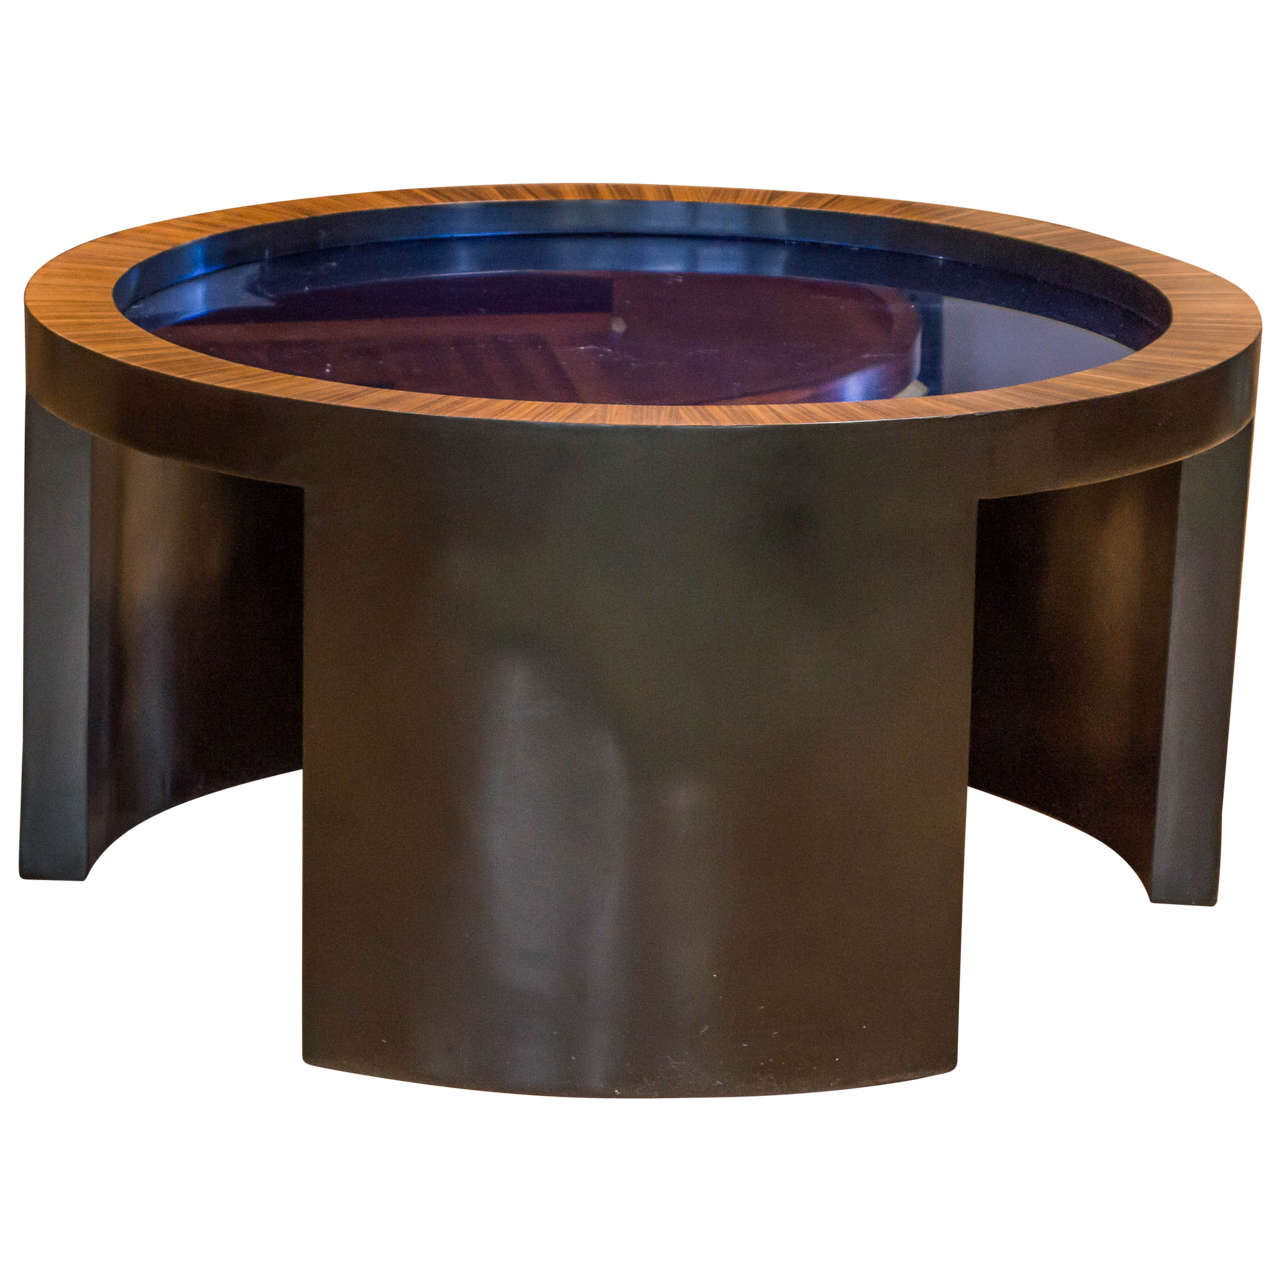 Round Glass Coffee Tables For Sale Round Coffee Table With Cobalt Blue Glass Top Attributed To